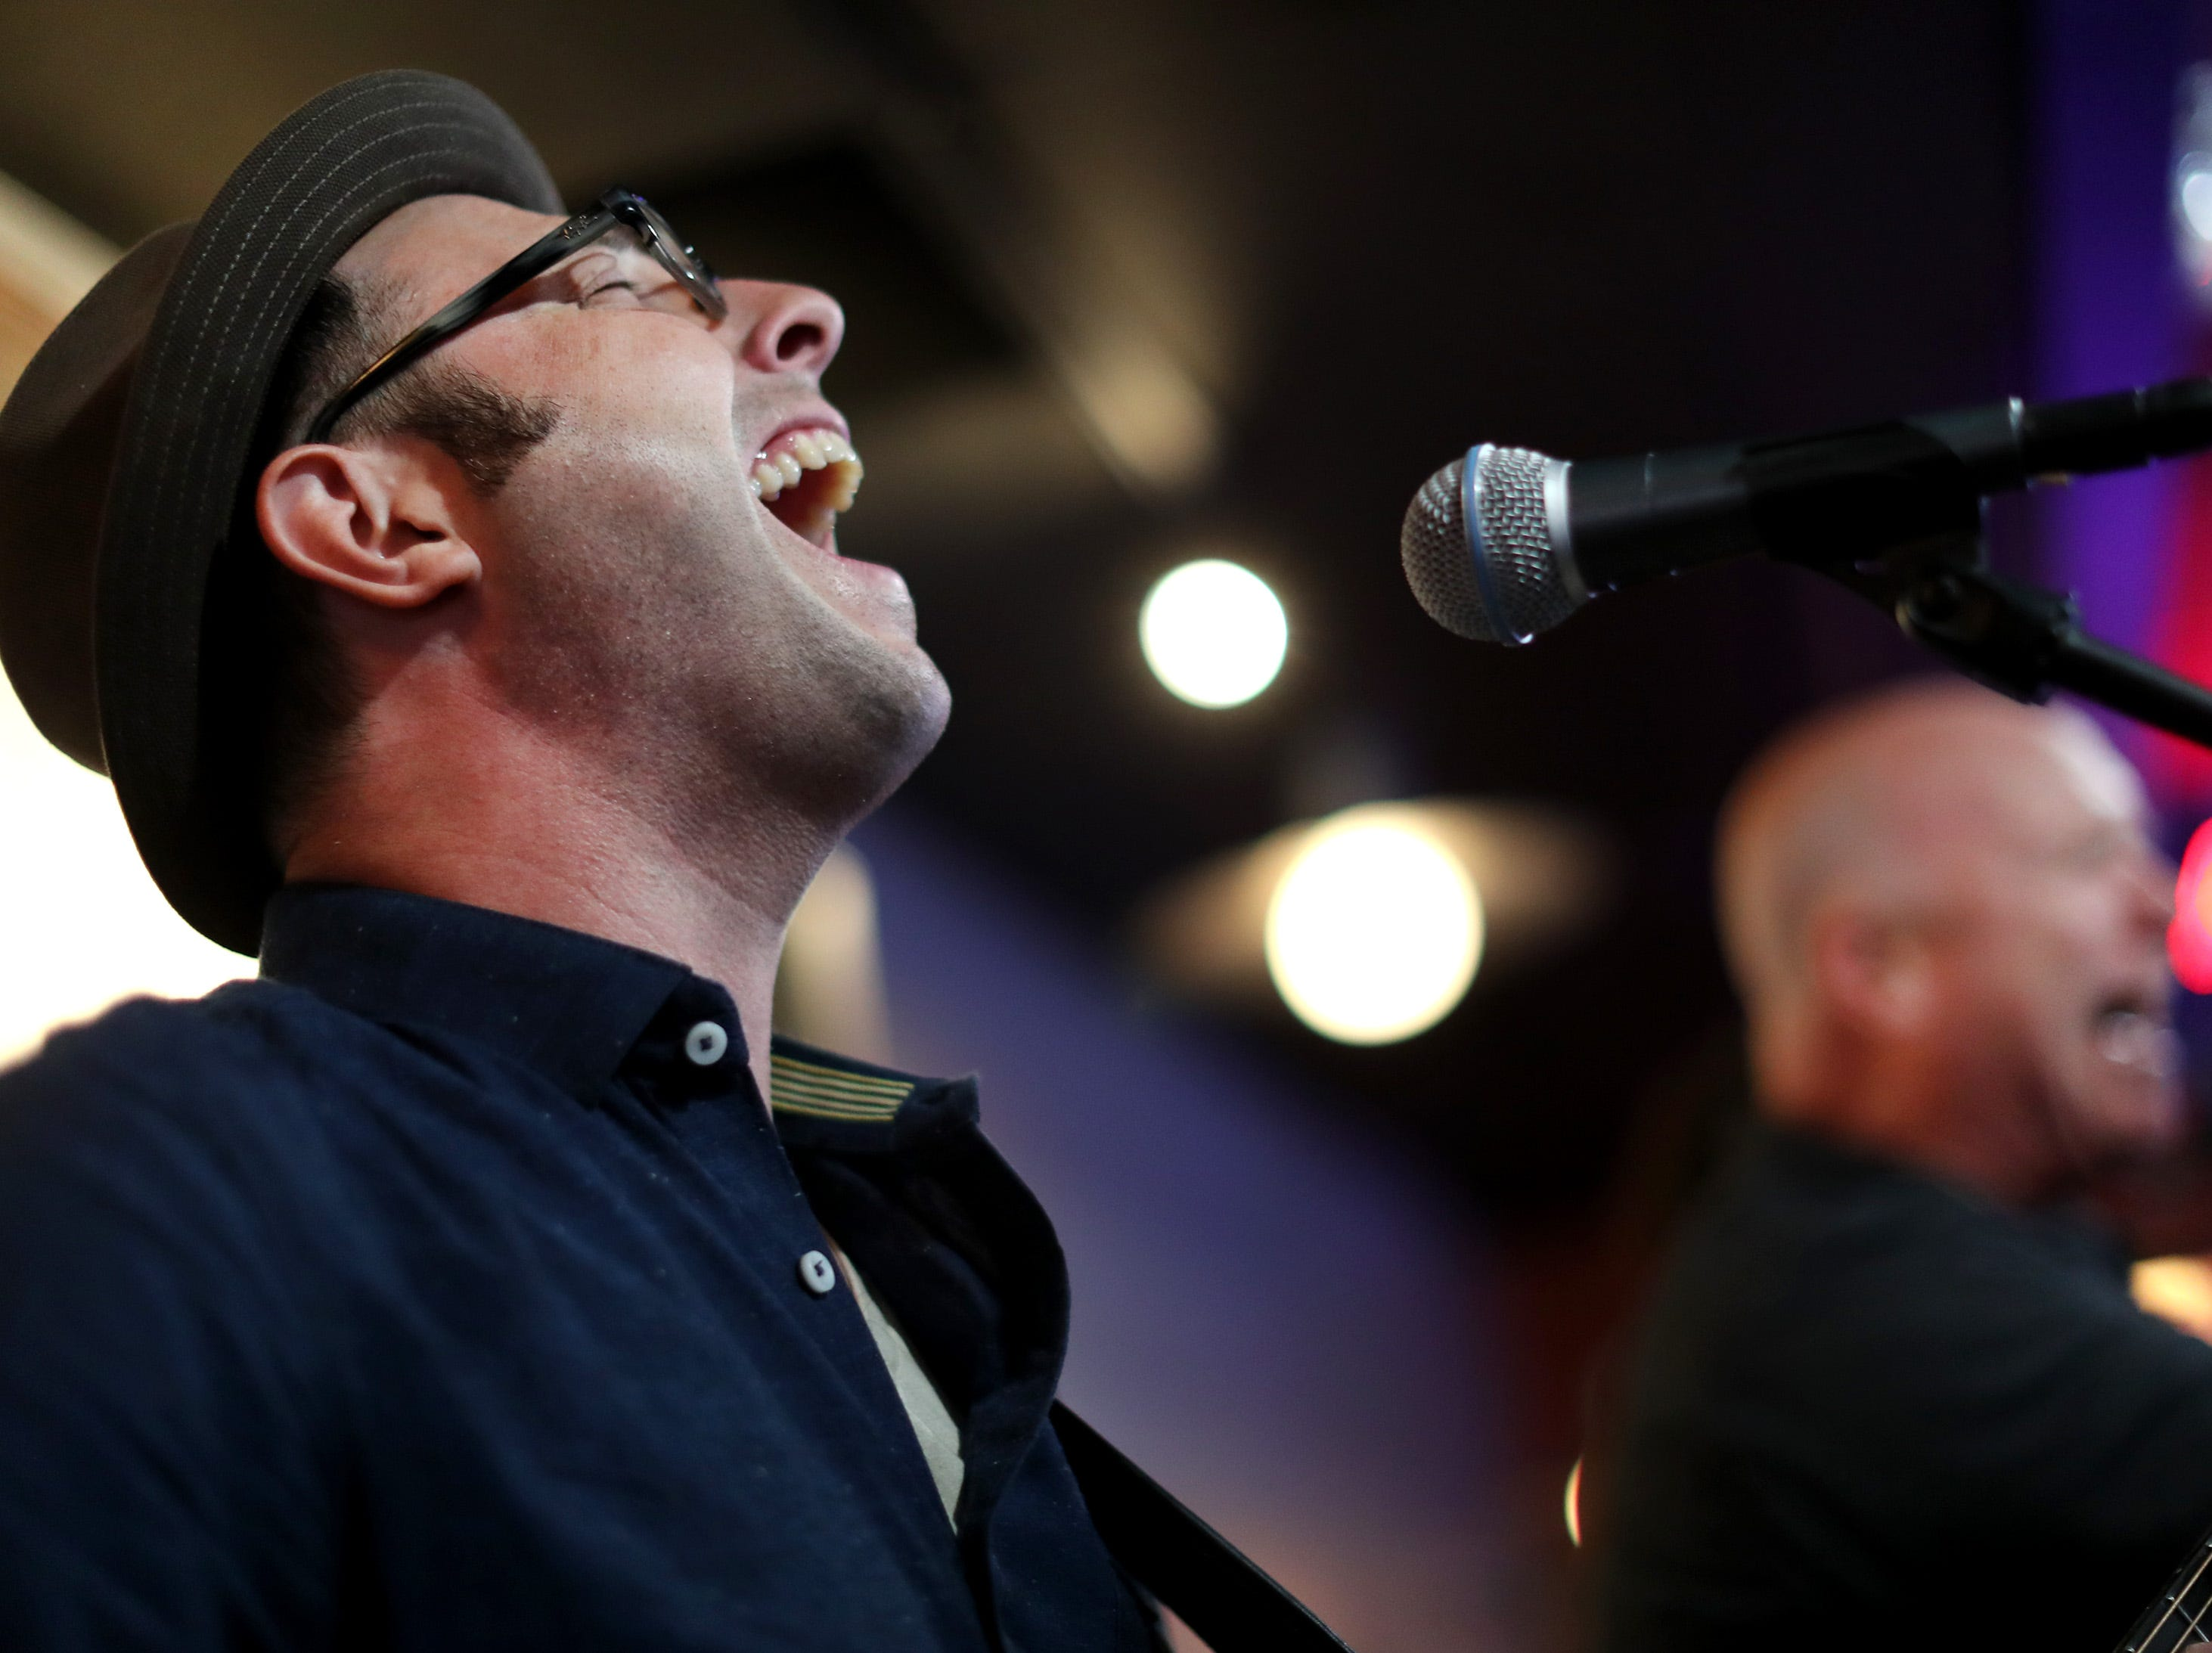 Bascom Hill performs at Bad Badger during the first day of Mile of Music Thursday, Aug. 2, 2018, in Appleton, Wis.Danny Damiani/USA TODAY NETWORK-Wisconsin